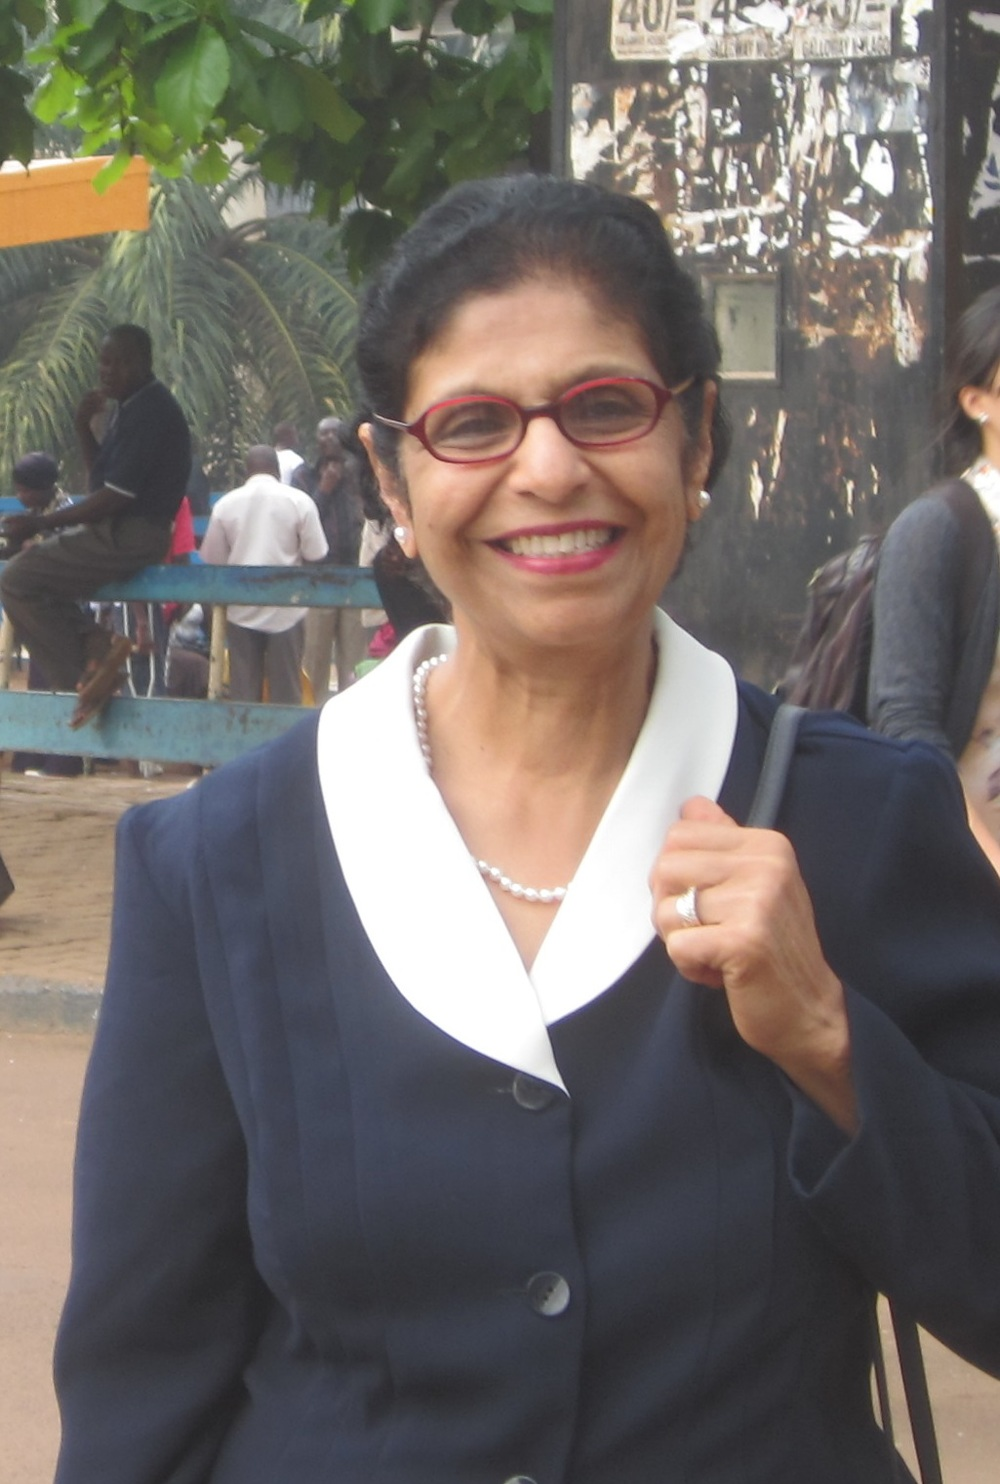 Dilshad at Makarere University in Kampala, Uganda